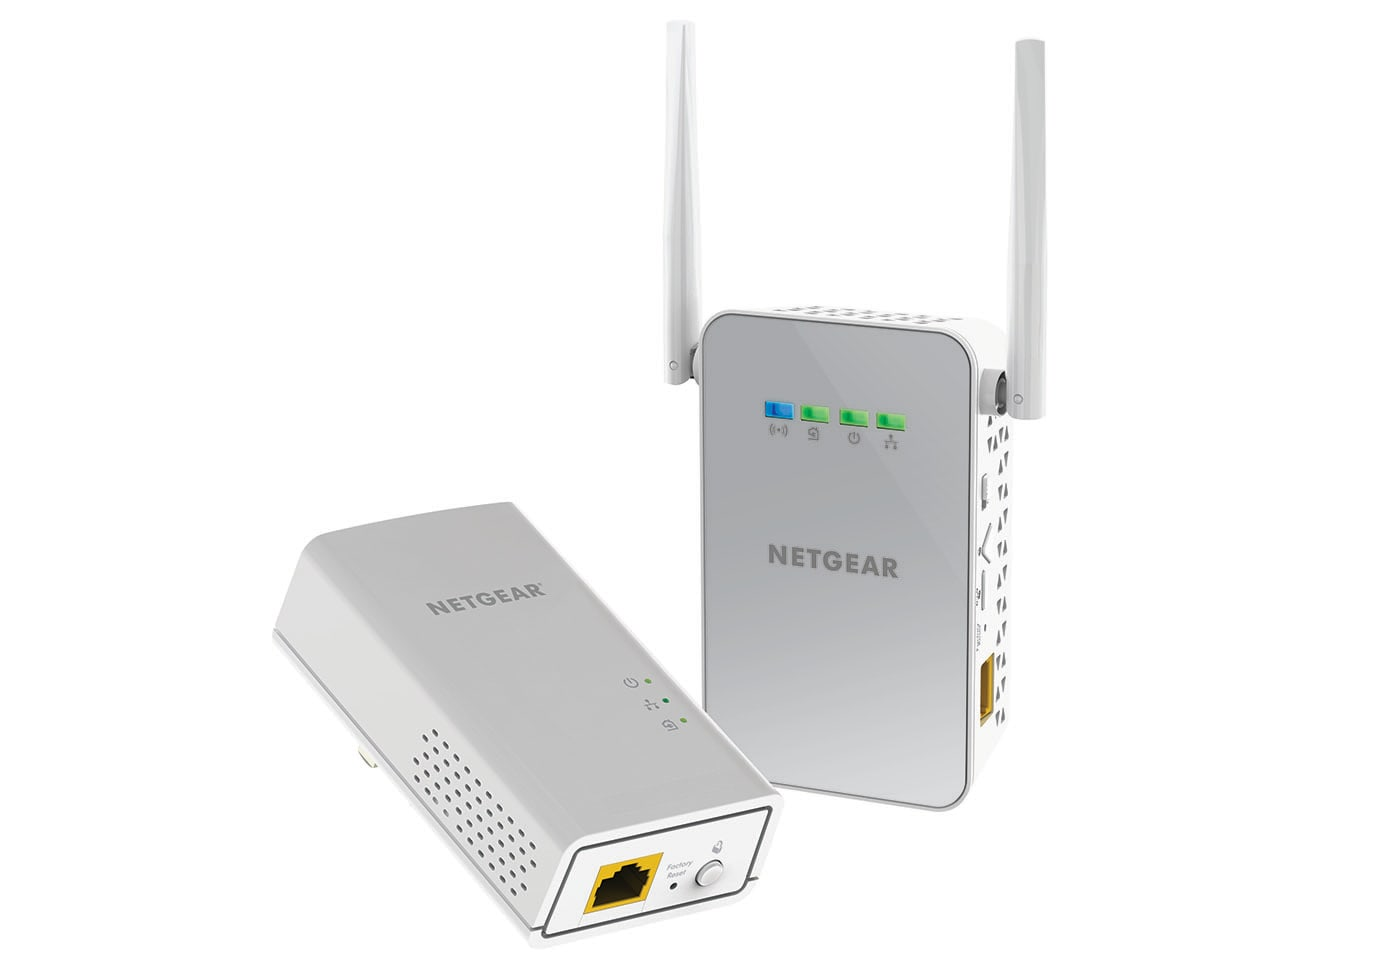 Netgear transforms your power plug into a fast WiFi hotspot